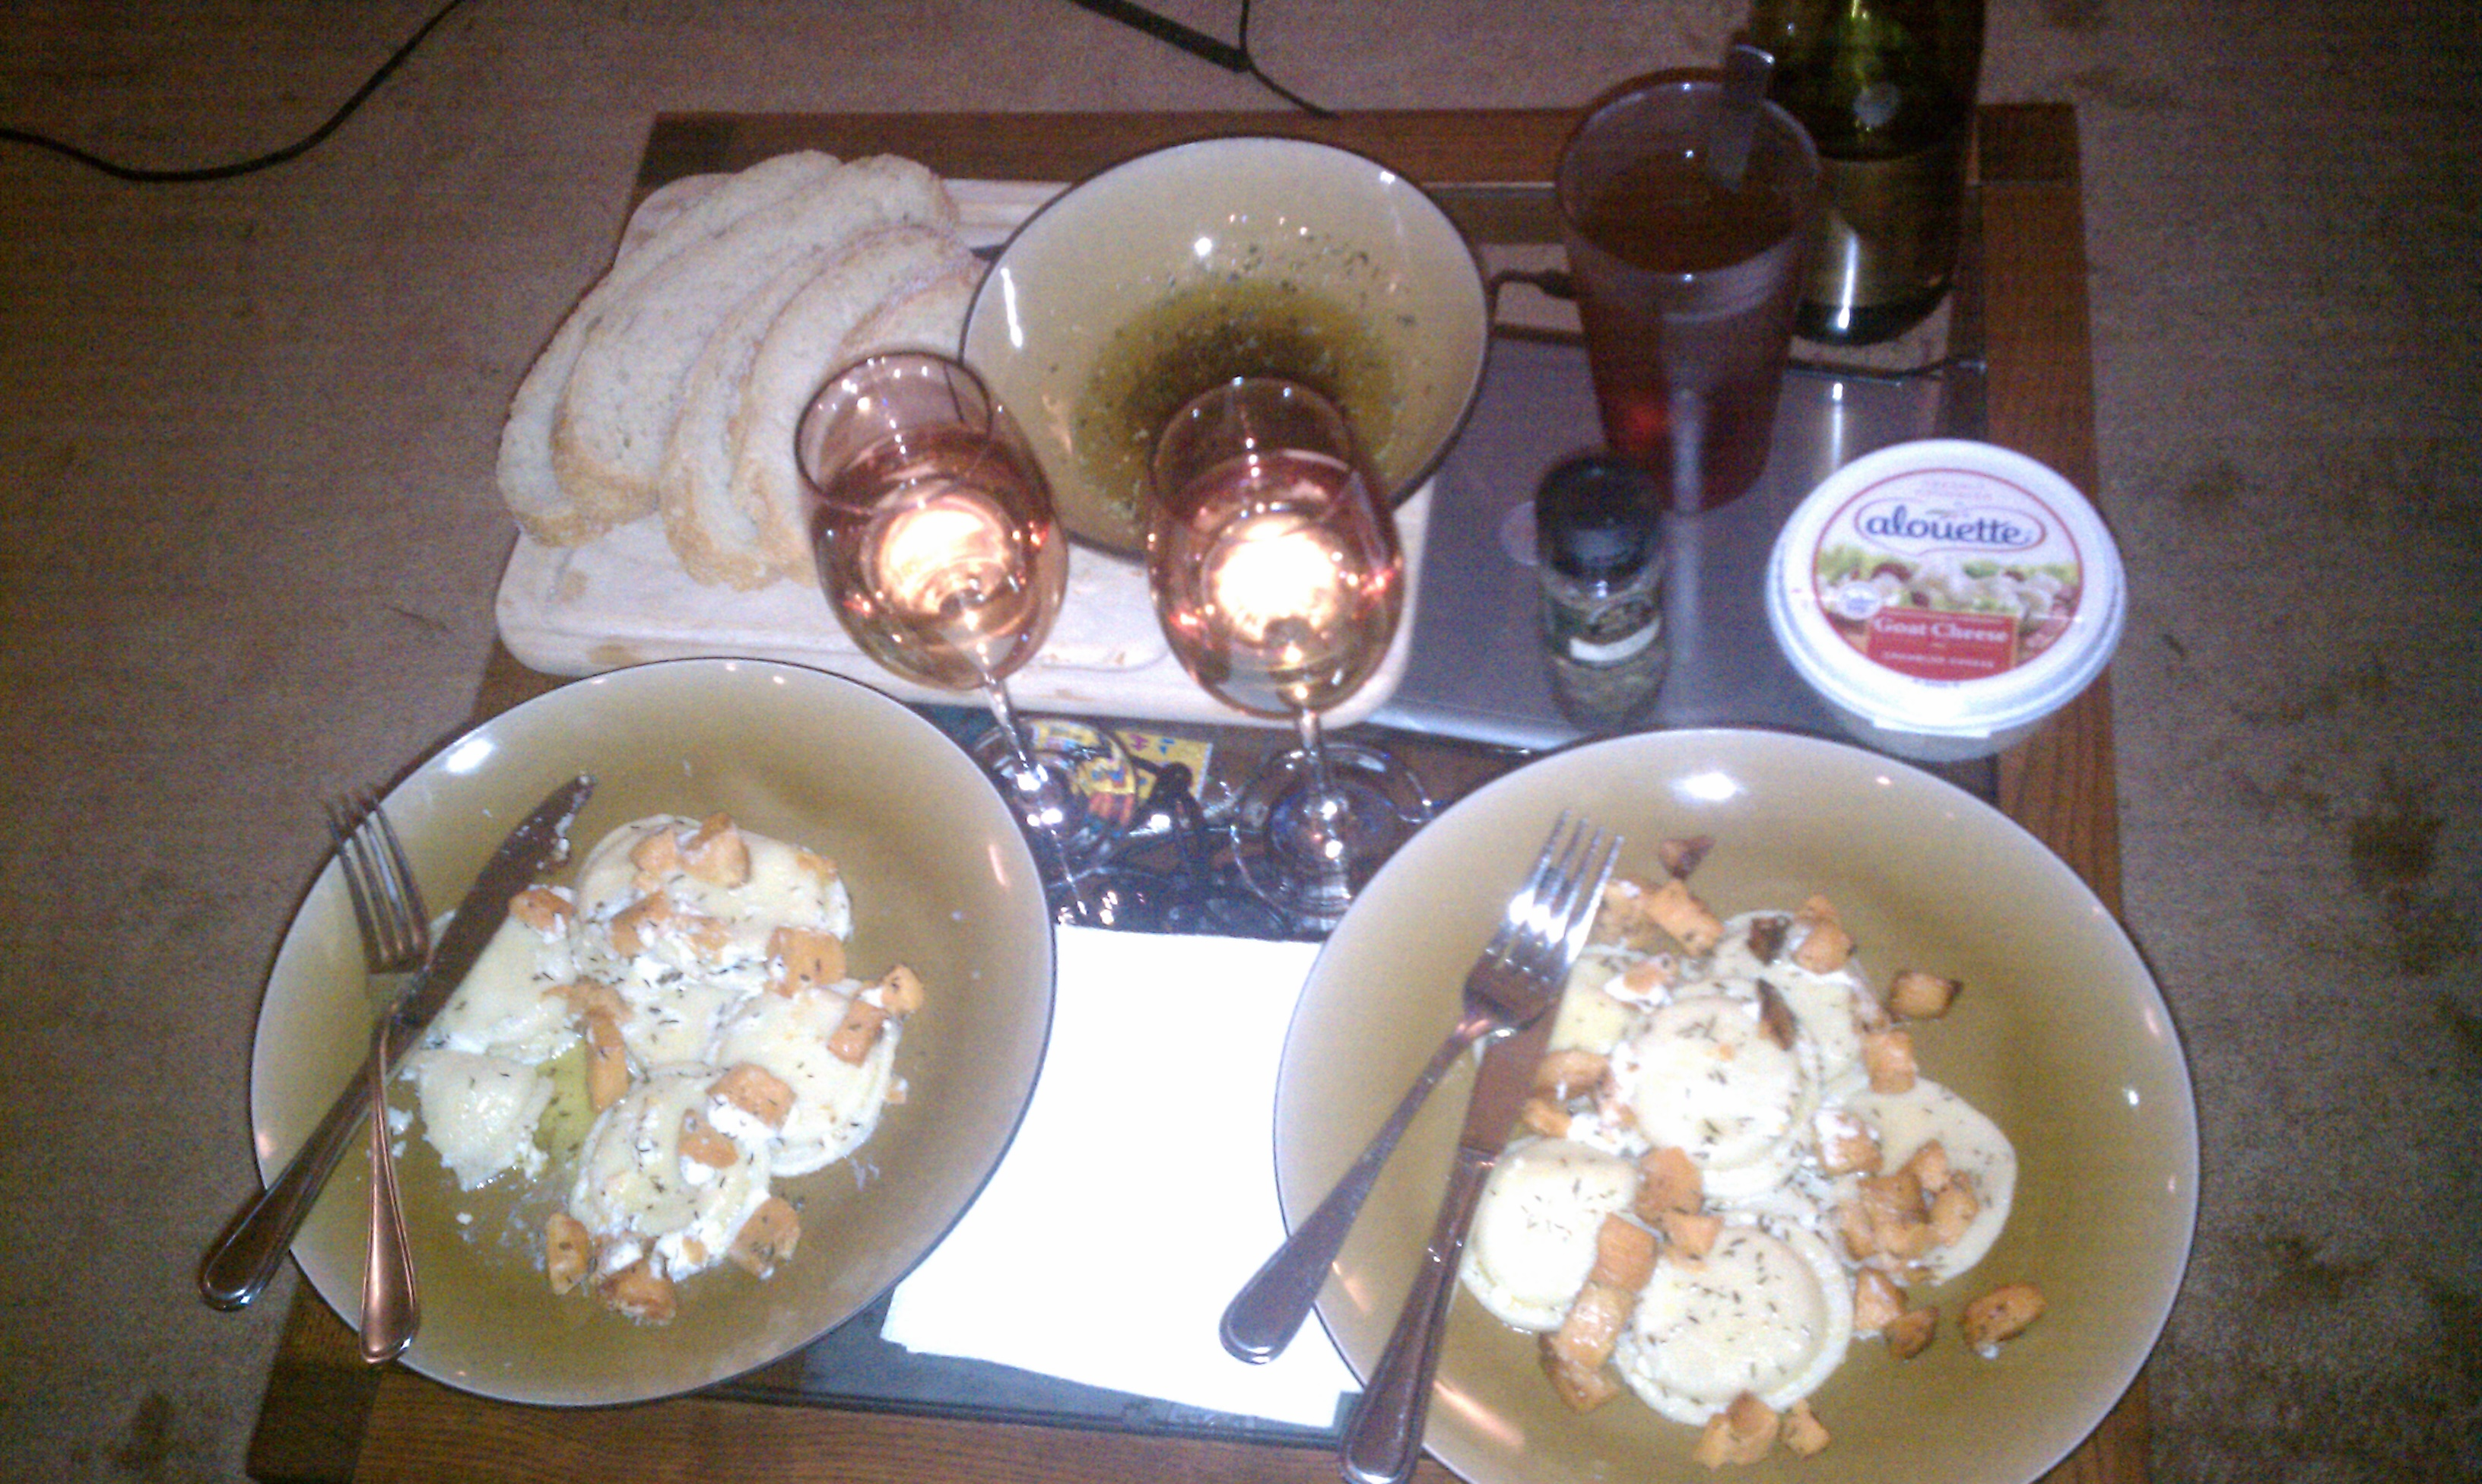 NJ :: Cheese Ravioli with olive oil thyme and baked sweet potatoes with Calabrese bread